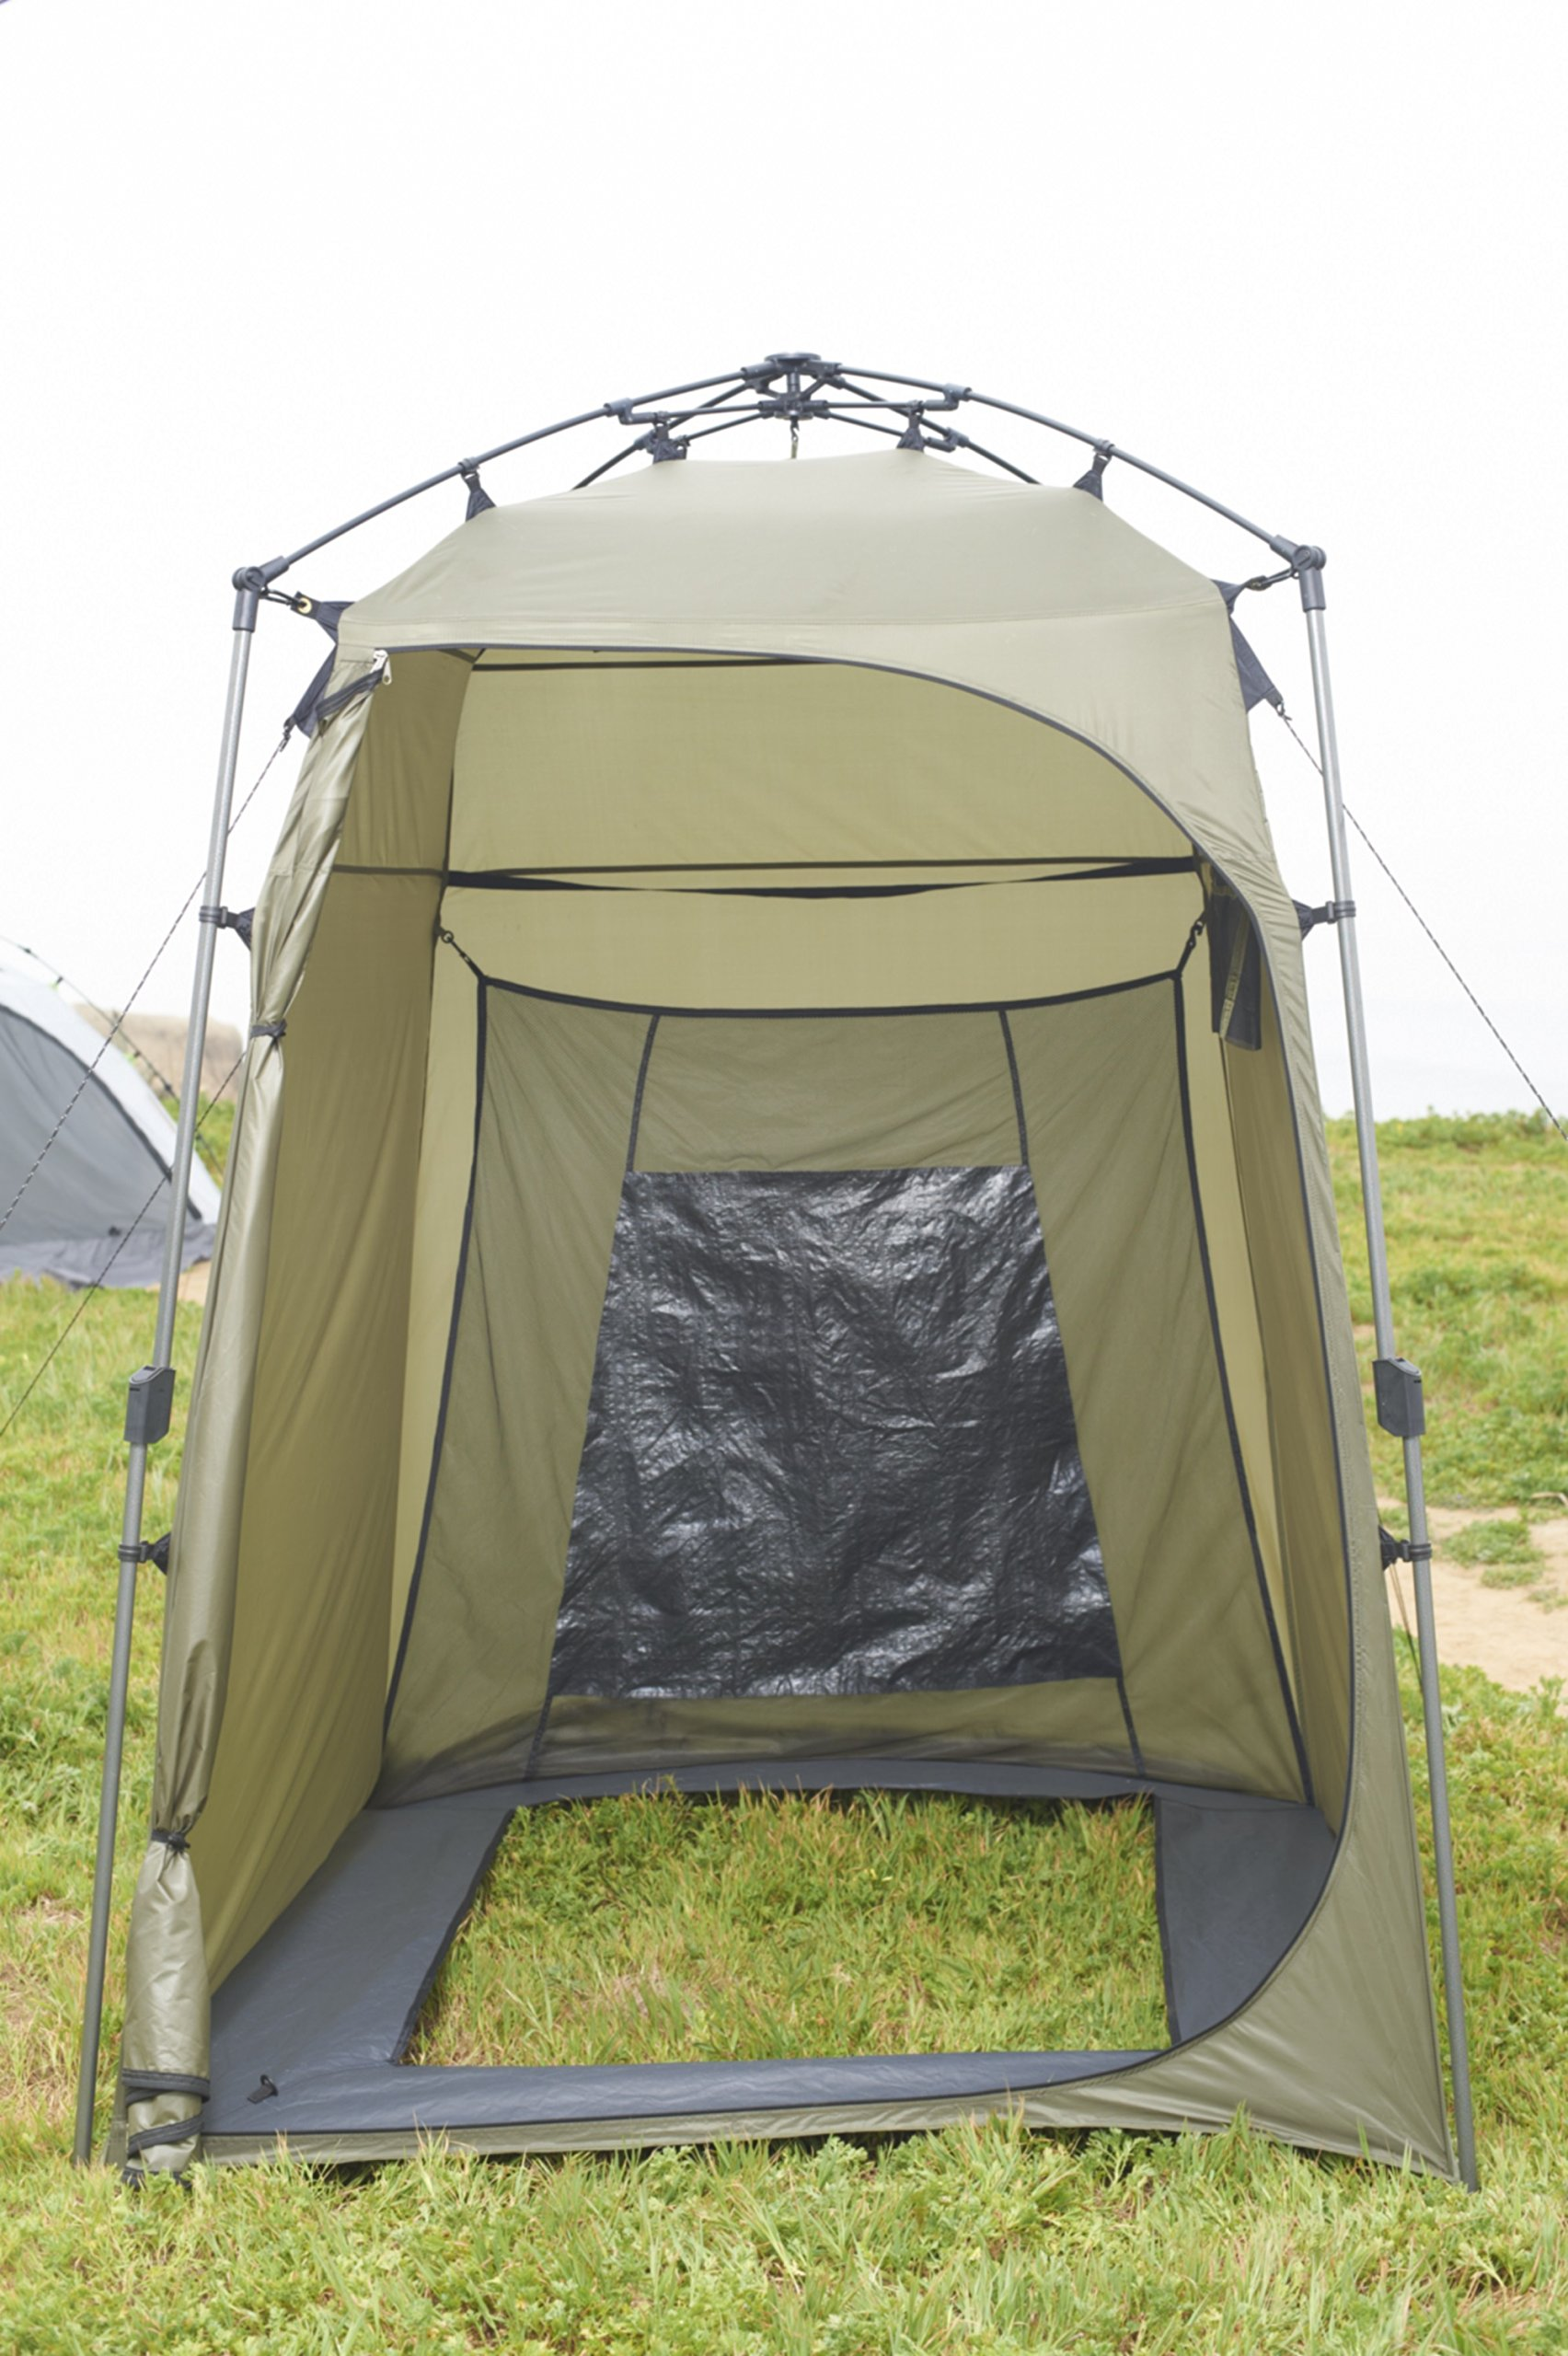 Lightspeed Outdoors Xtra Wide Quick Set Up Privacy Tent, Toilet, Camp Shower, Portable Changing Room by Lightspeed Outdoors (Image #4)